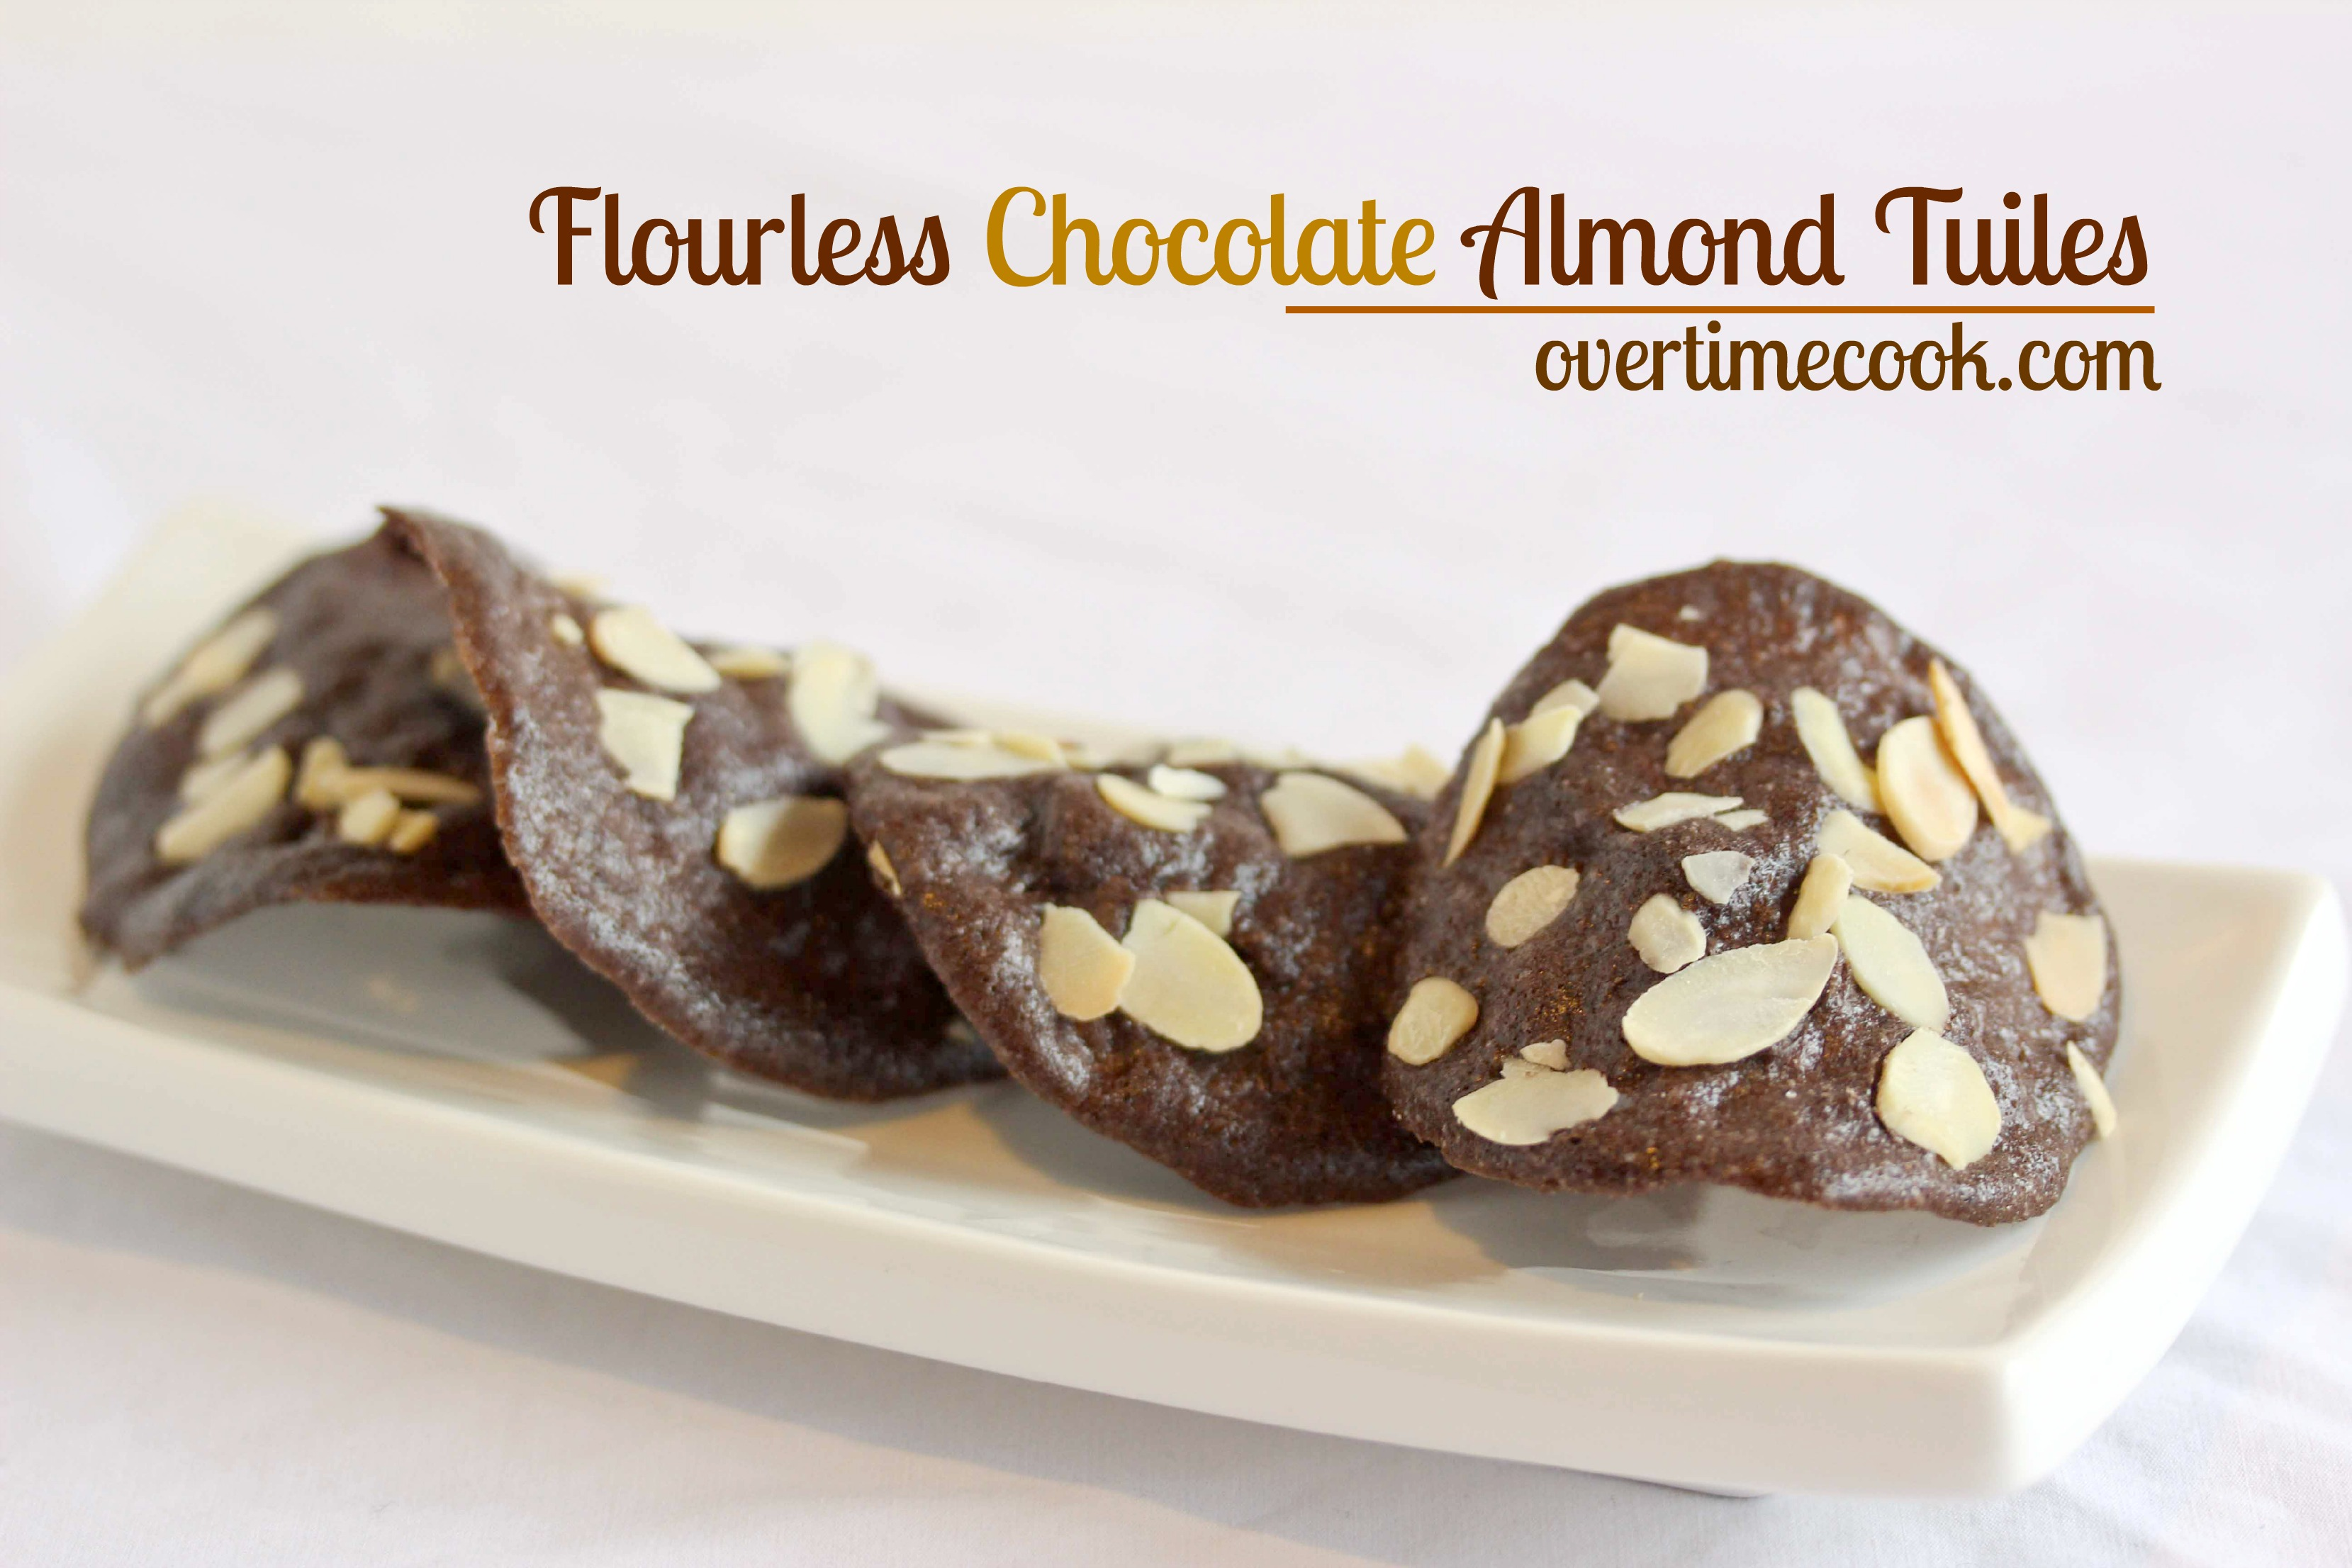 chocolate almond tuiles on overtime cook